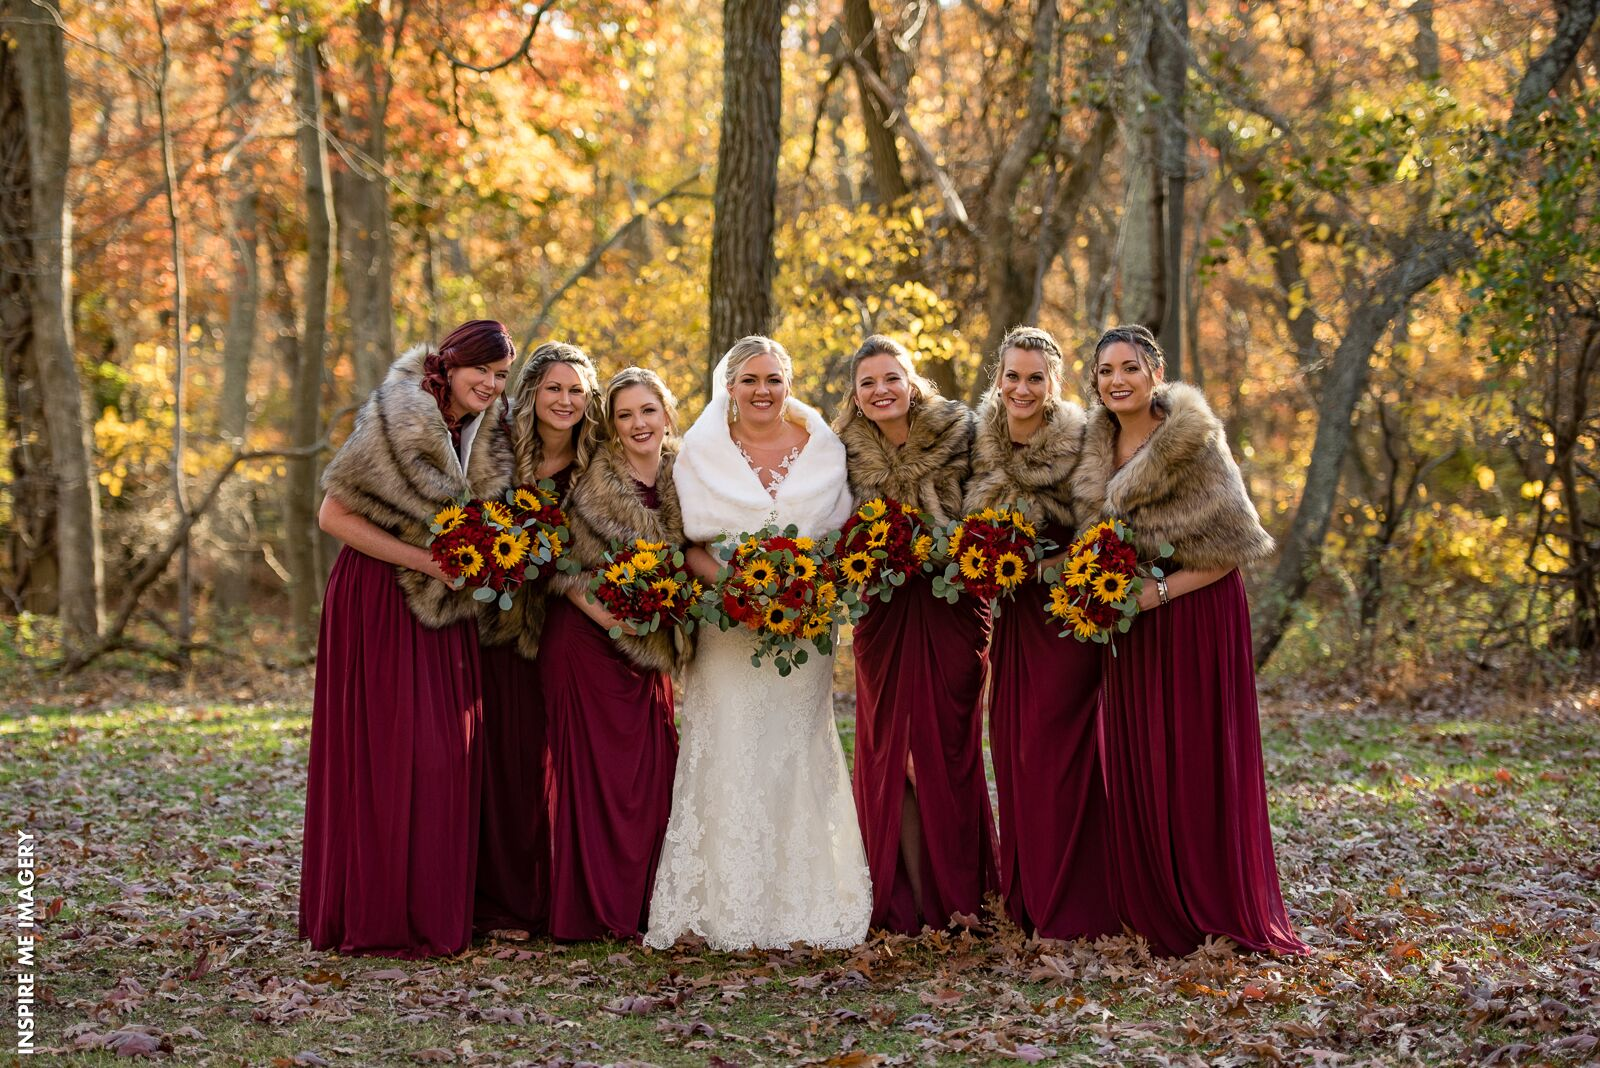 Get Inspired By The Season With These Fall Wedding Ideas Crystal